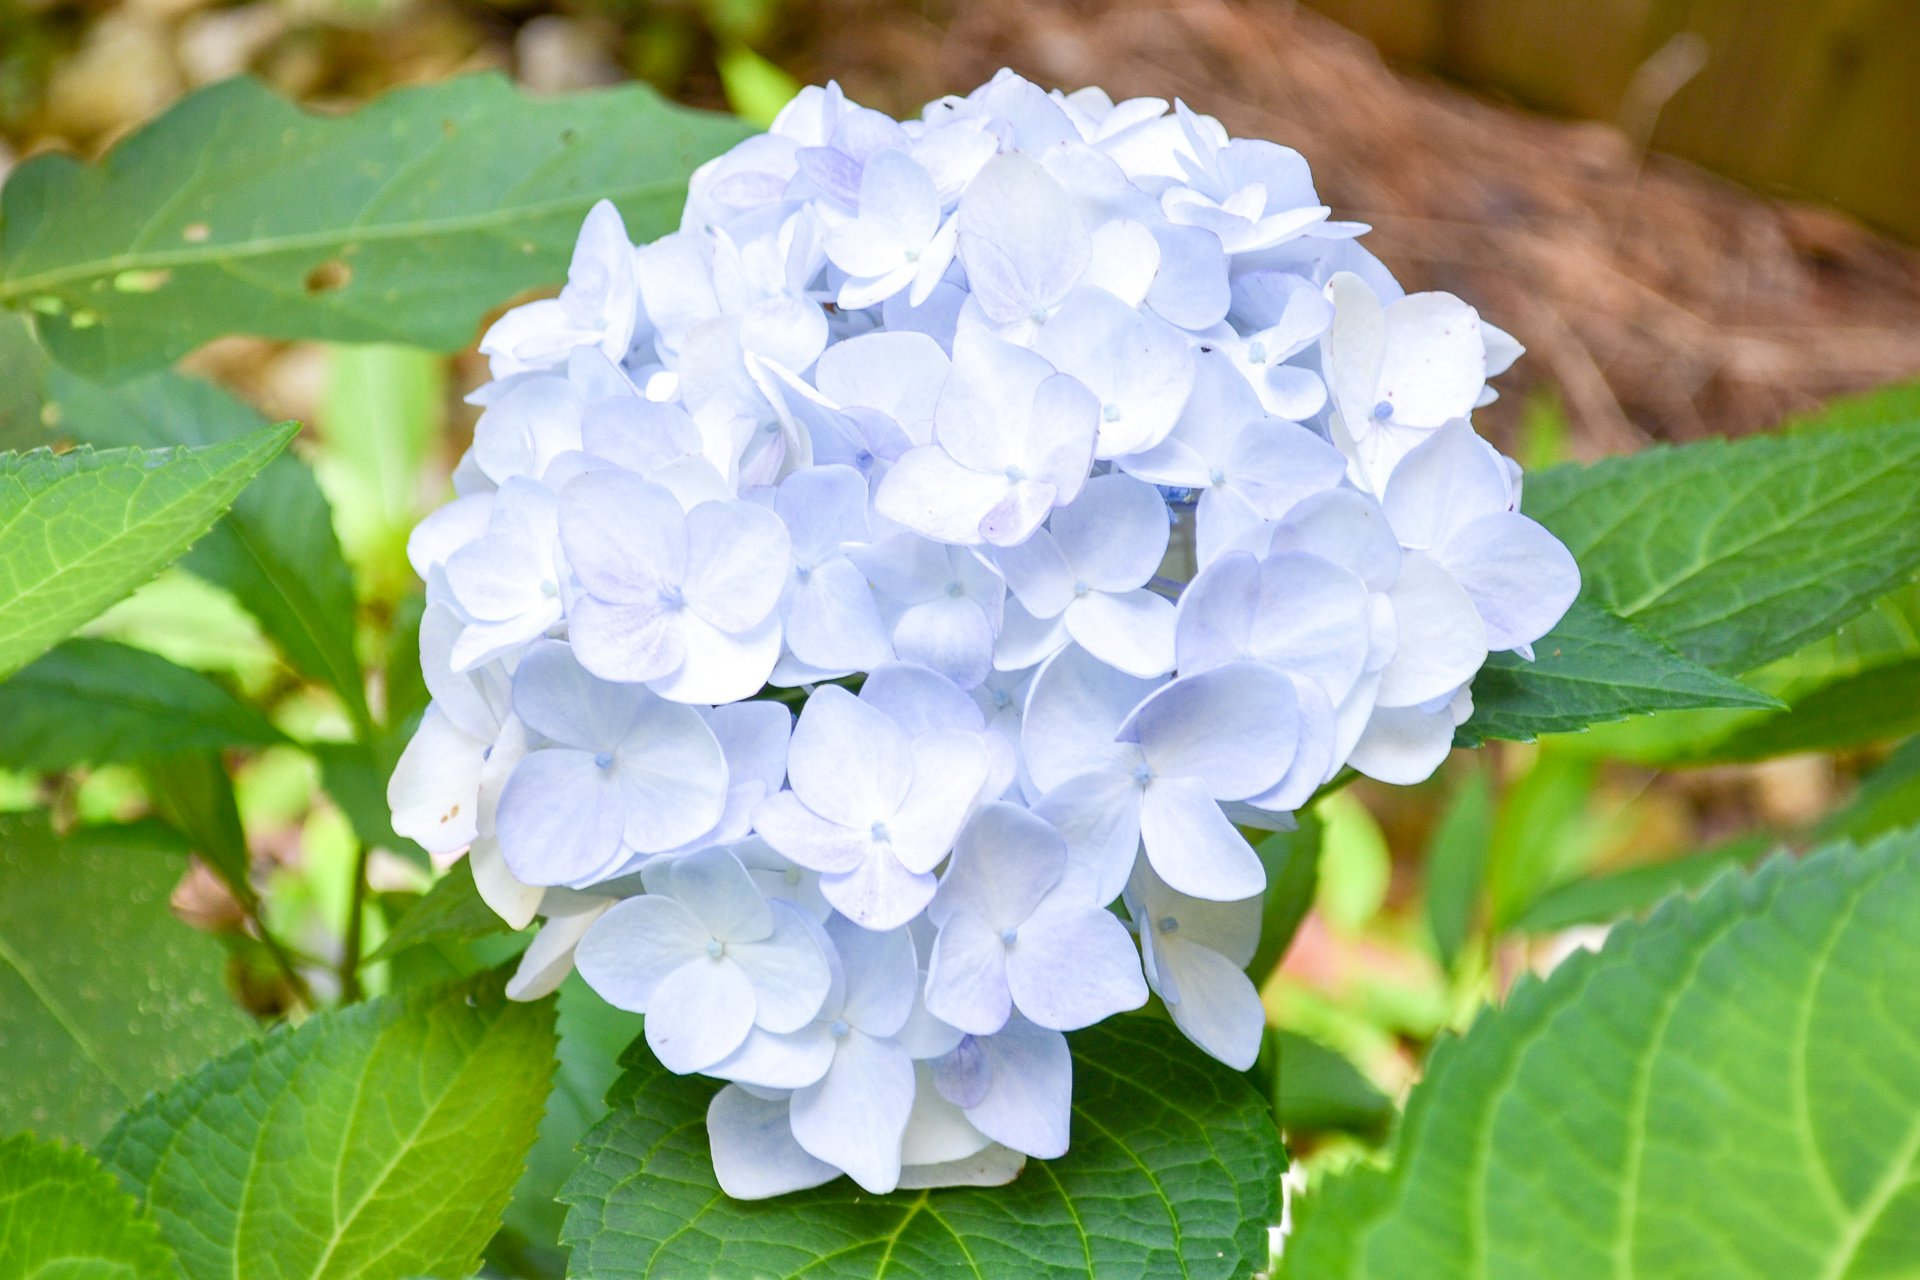 A white hydrangea with a light blue tint is an excellent example of all the different varieties in my garden.